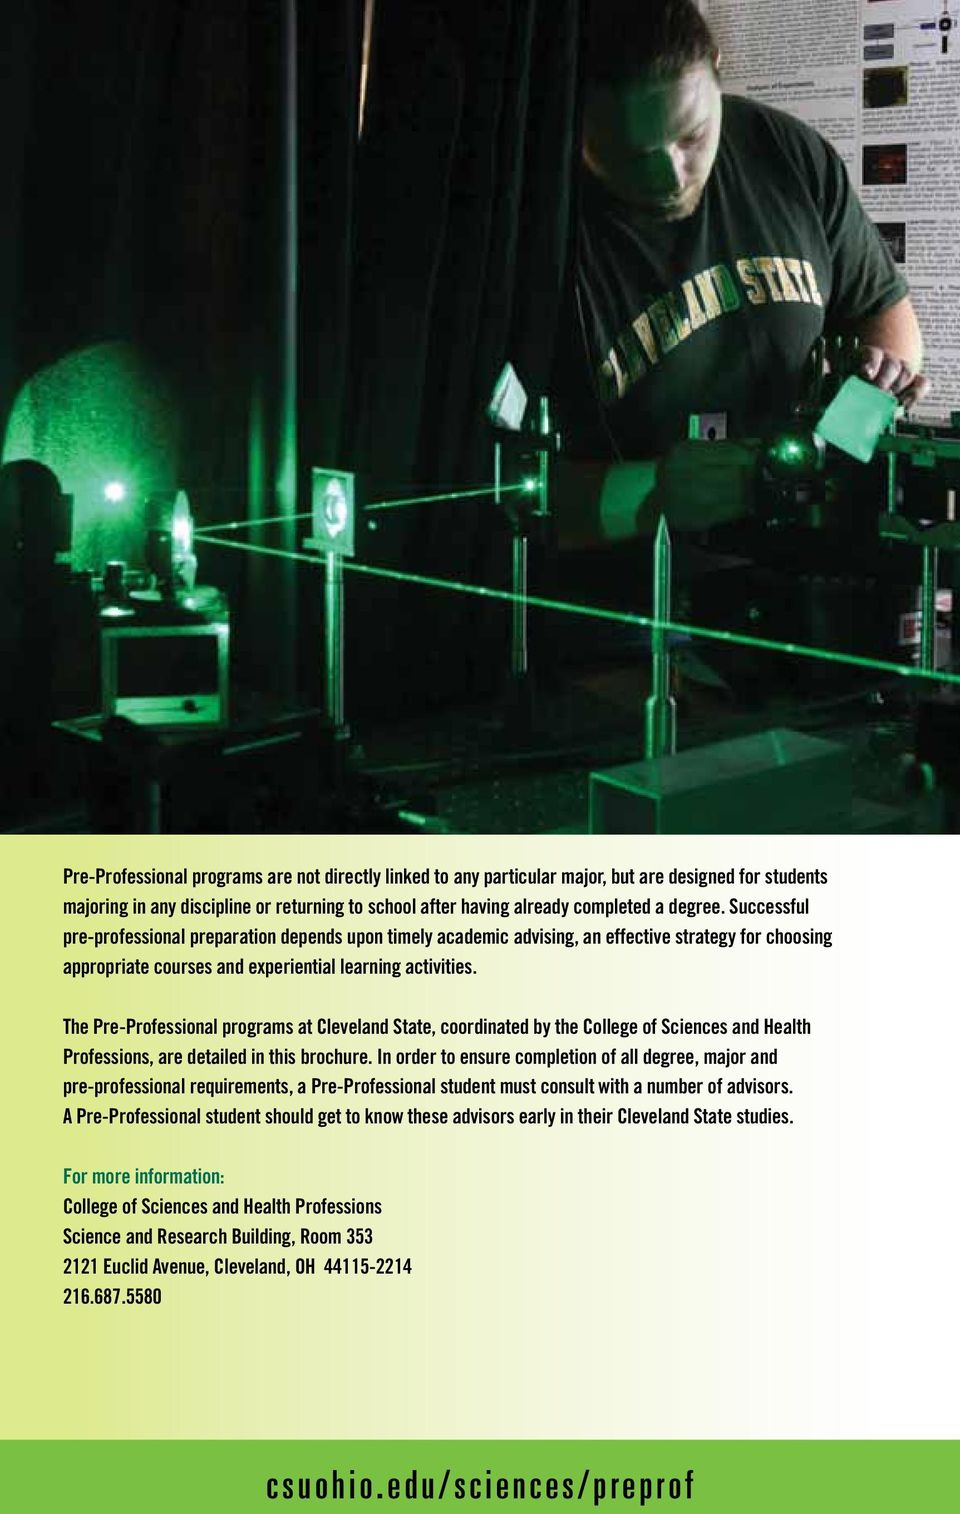 The Pre-Professional programs at Cleveland State, coordinated by the College of Sciences and Health Professions, are detailed in this brochure.